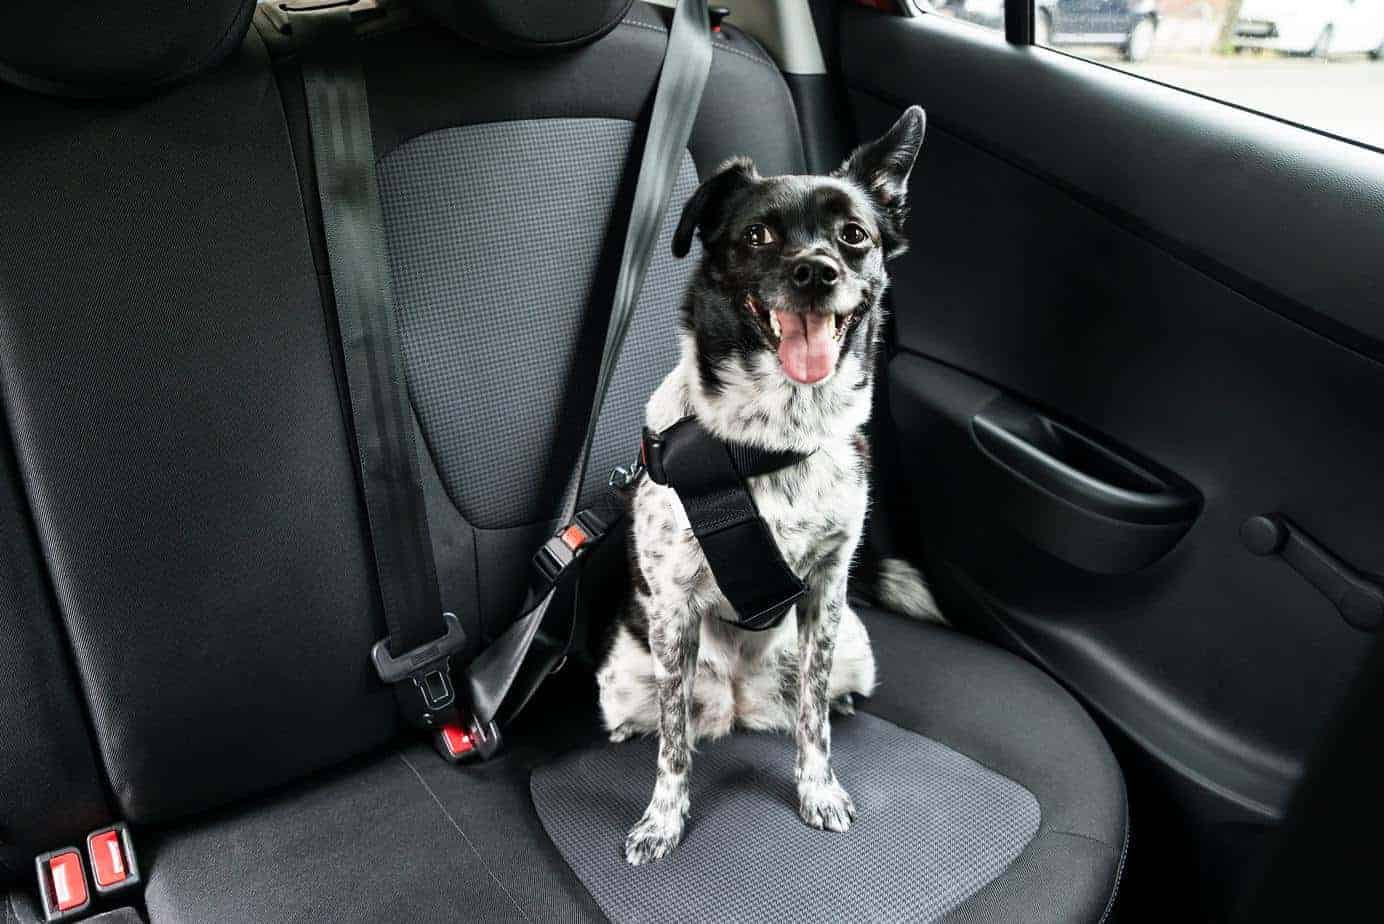 Border collie wears safety harness. When driving with your dog, keep your pup safely restrained.